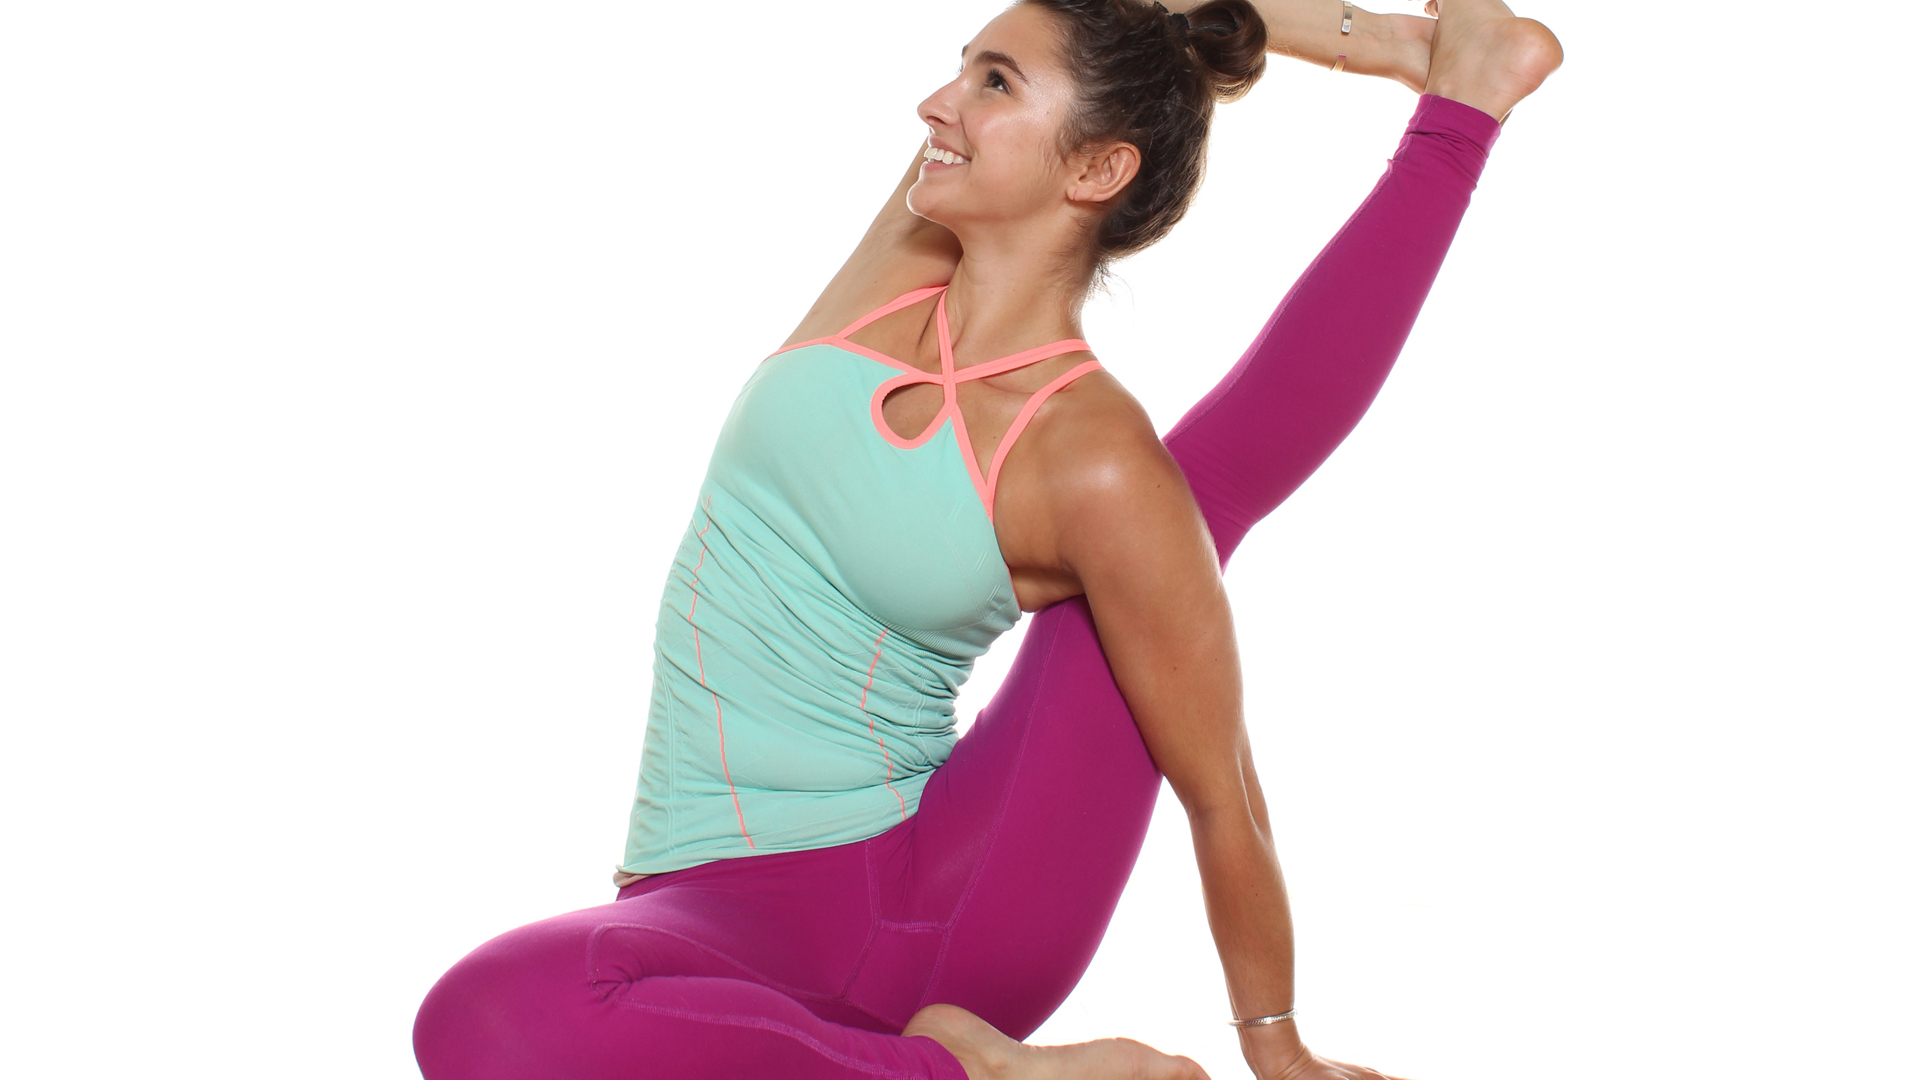 Watch Yoga Stretch For Happy Hips & Hamstrings | Prime Video